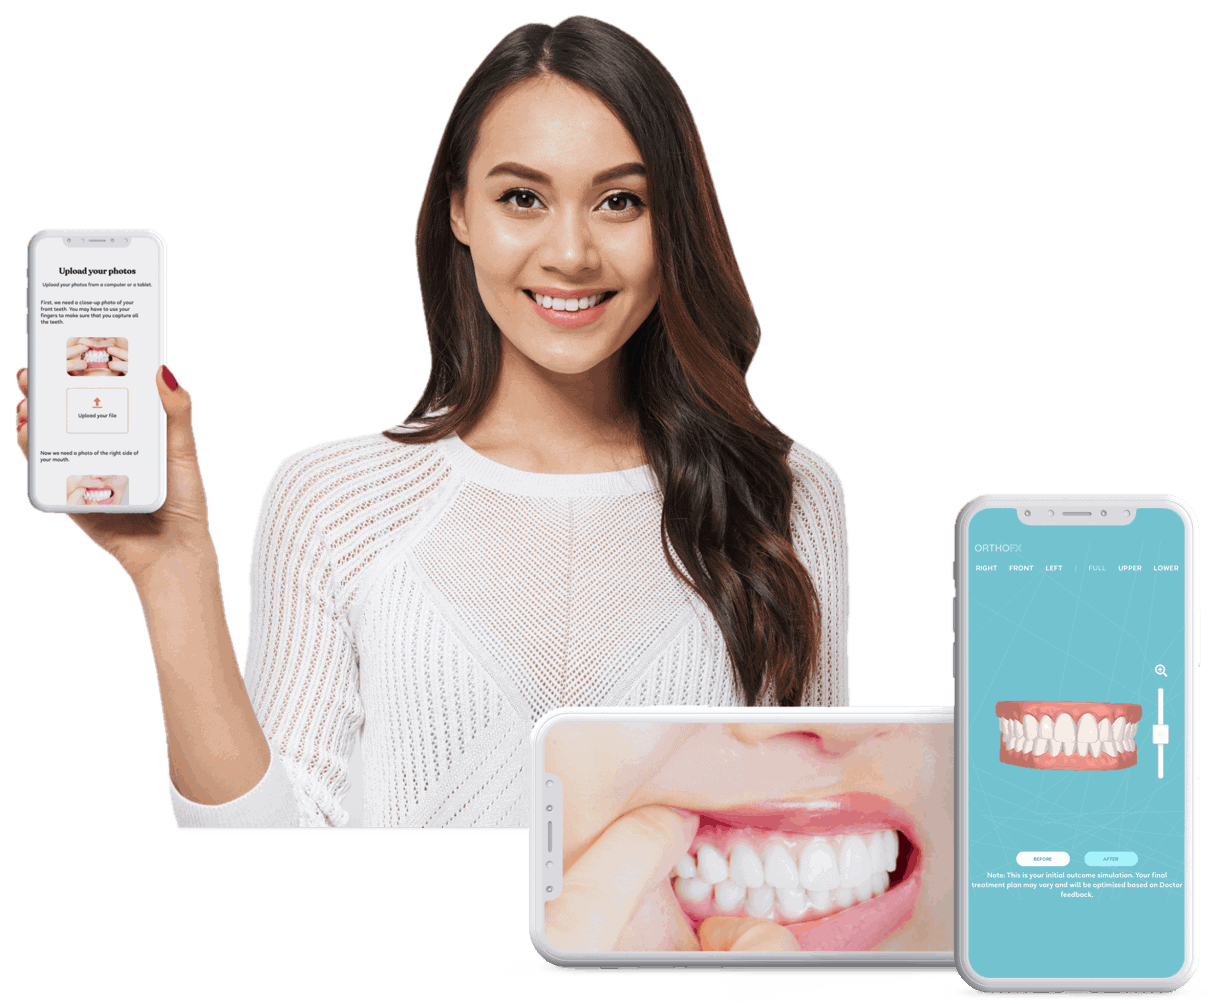 Best Teeth Straightening Aligners - OrthoFX